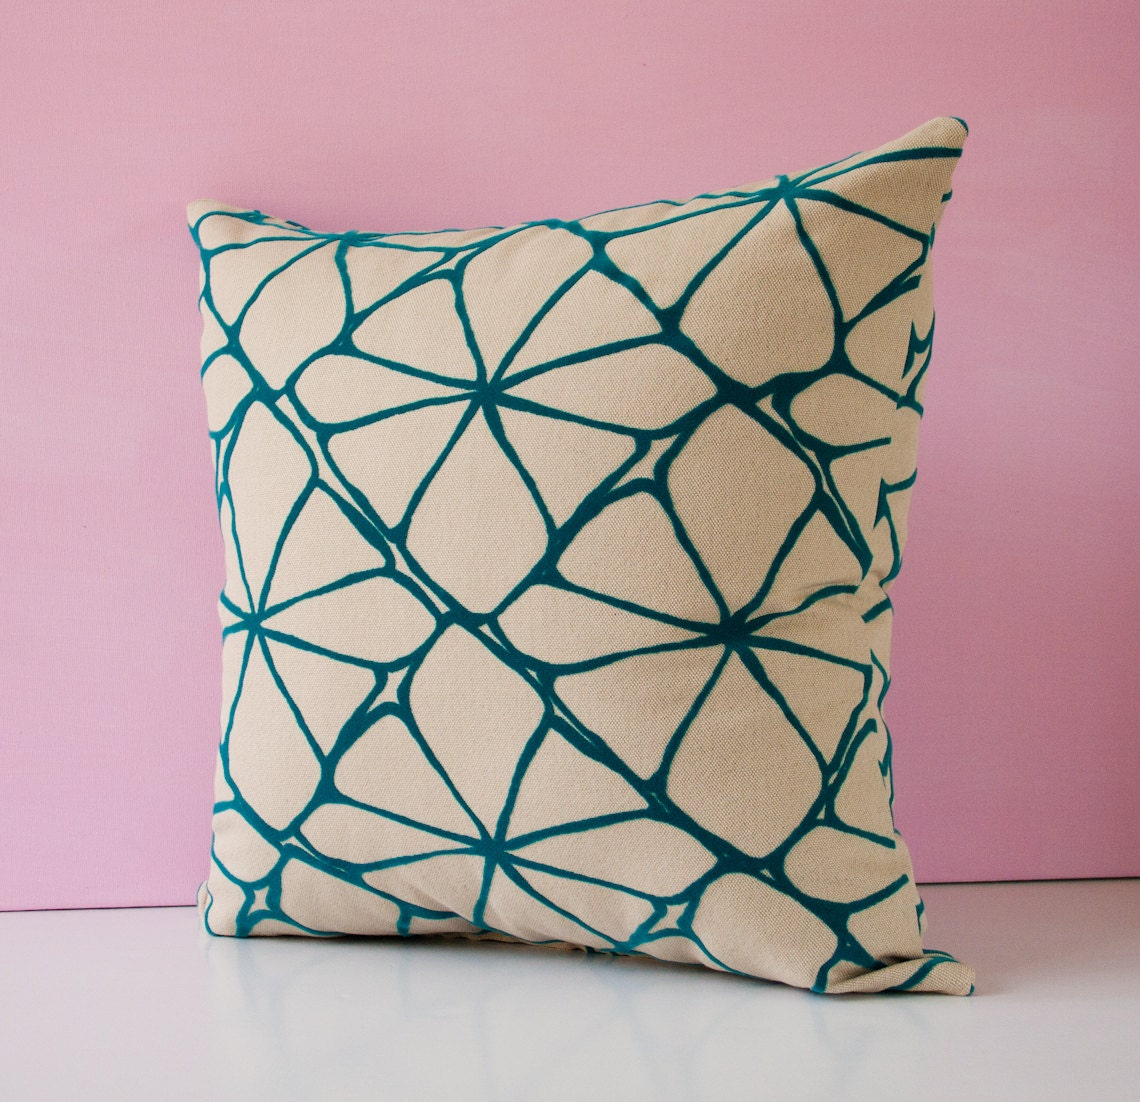 Fancy Throw Pillow Patterns : Turquoise pattern pillow cover decorative pillow throw